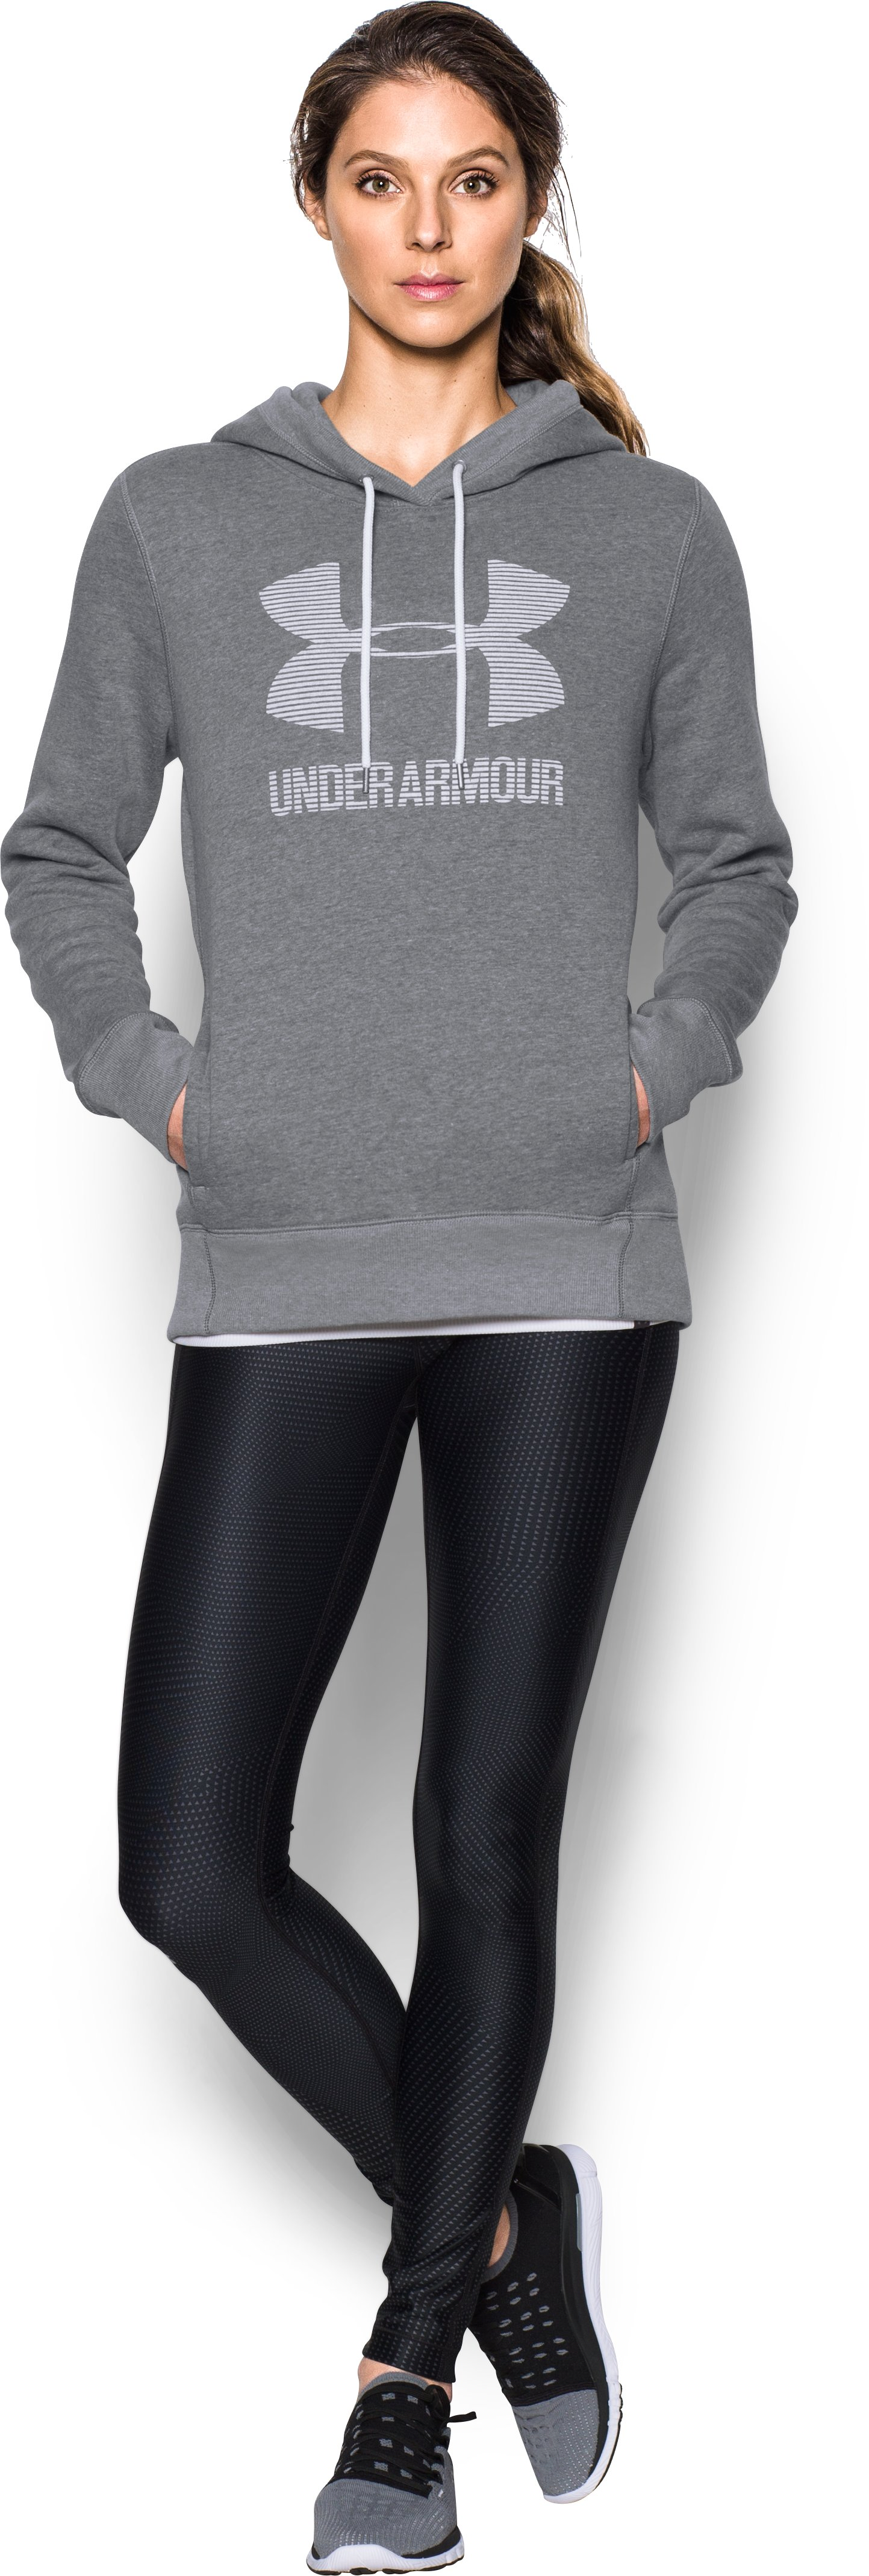 Women's UA Favorite Fleece Sportstyle Hoodie, GRAPHITE LIGHT HEATHER